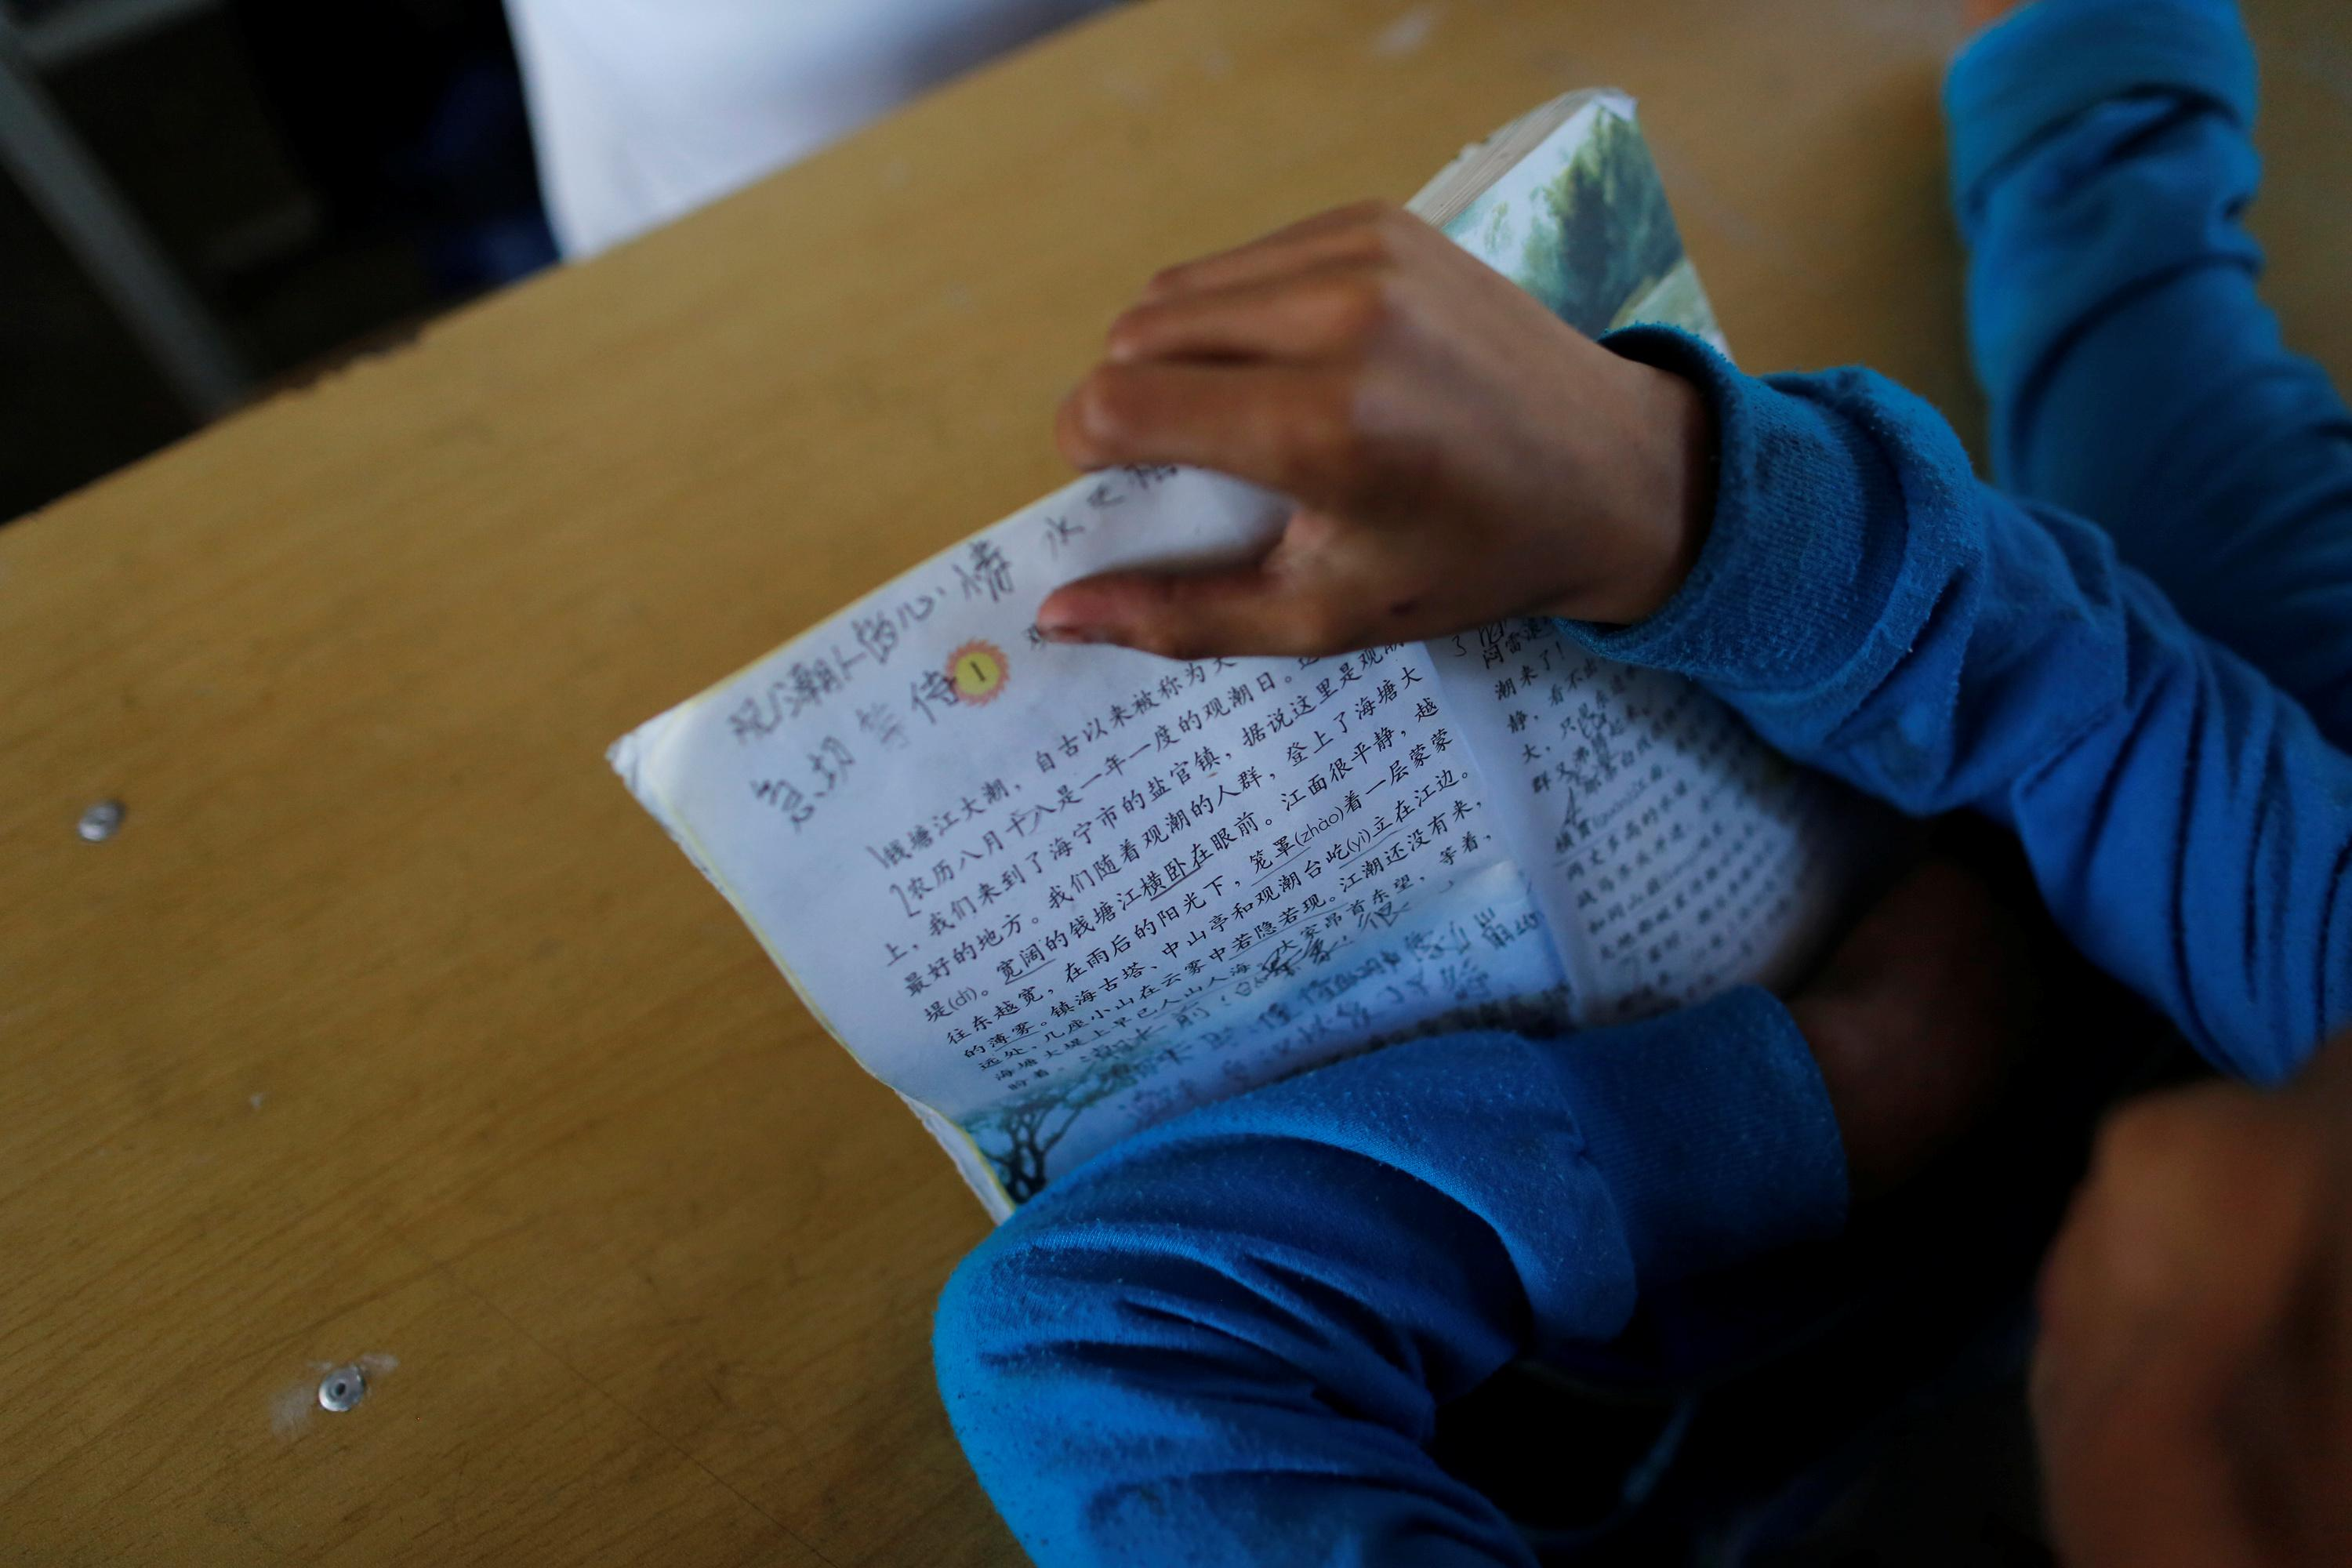 A child holds a book during a Chinese language lesson in a school at Namtit, Wa territory in northeast Myanmar November 30, 2016. Soe Zeya Tun